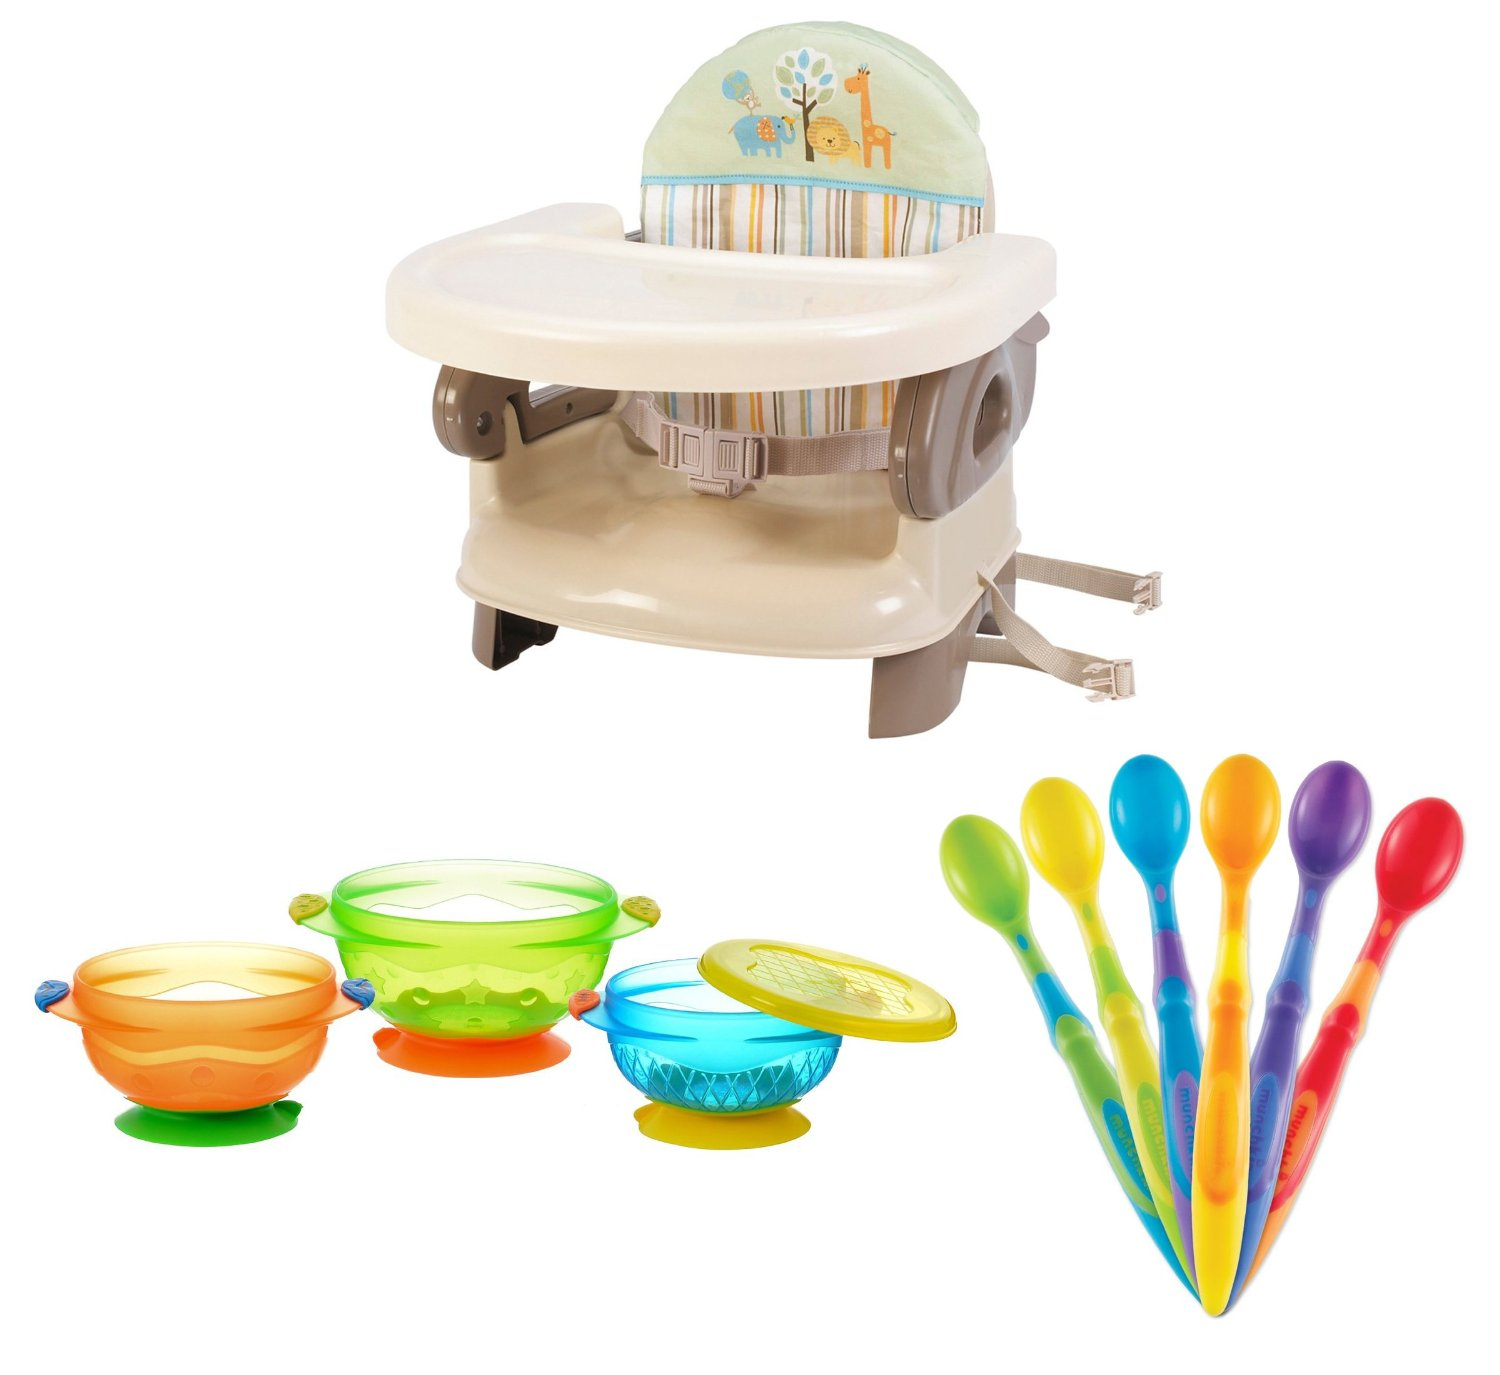 Summer Infant Deluxe Comfort Booster (Safari Stripe) with Soft-Tip Infant Spoons and Stay Put Suction Bowls by Summer Infant